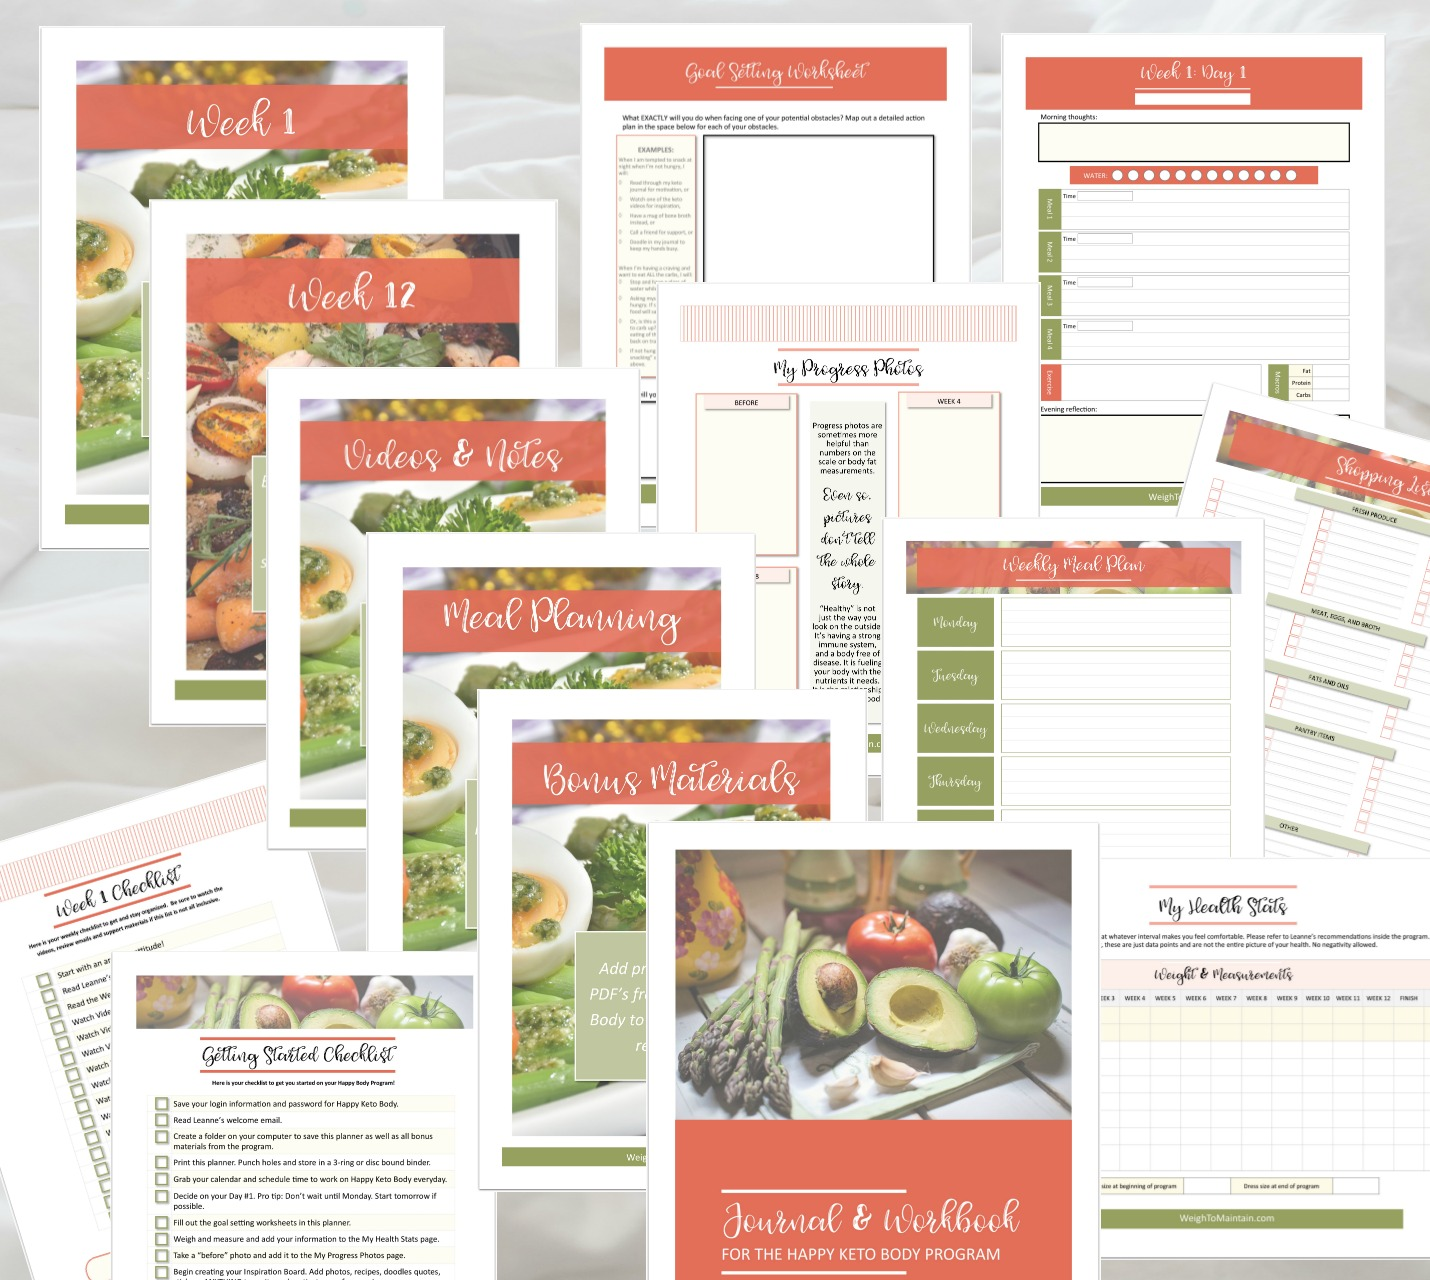 Free Happy Keto Body Bonus Planner… - Purchase Happy Keto Body through any link on this page and I'll send you this 170 page printable planner. Just email me your receipt (dated January 10-17, 2019) to me, Jacqui@PlanAHealthyLife.com!